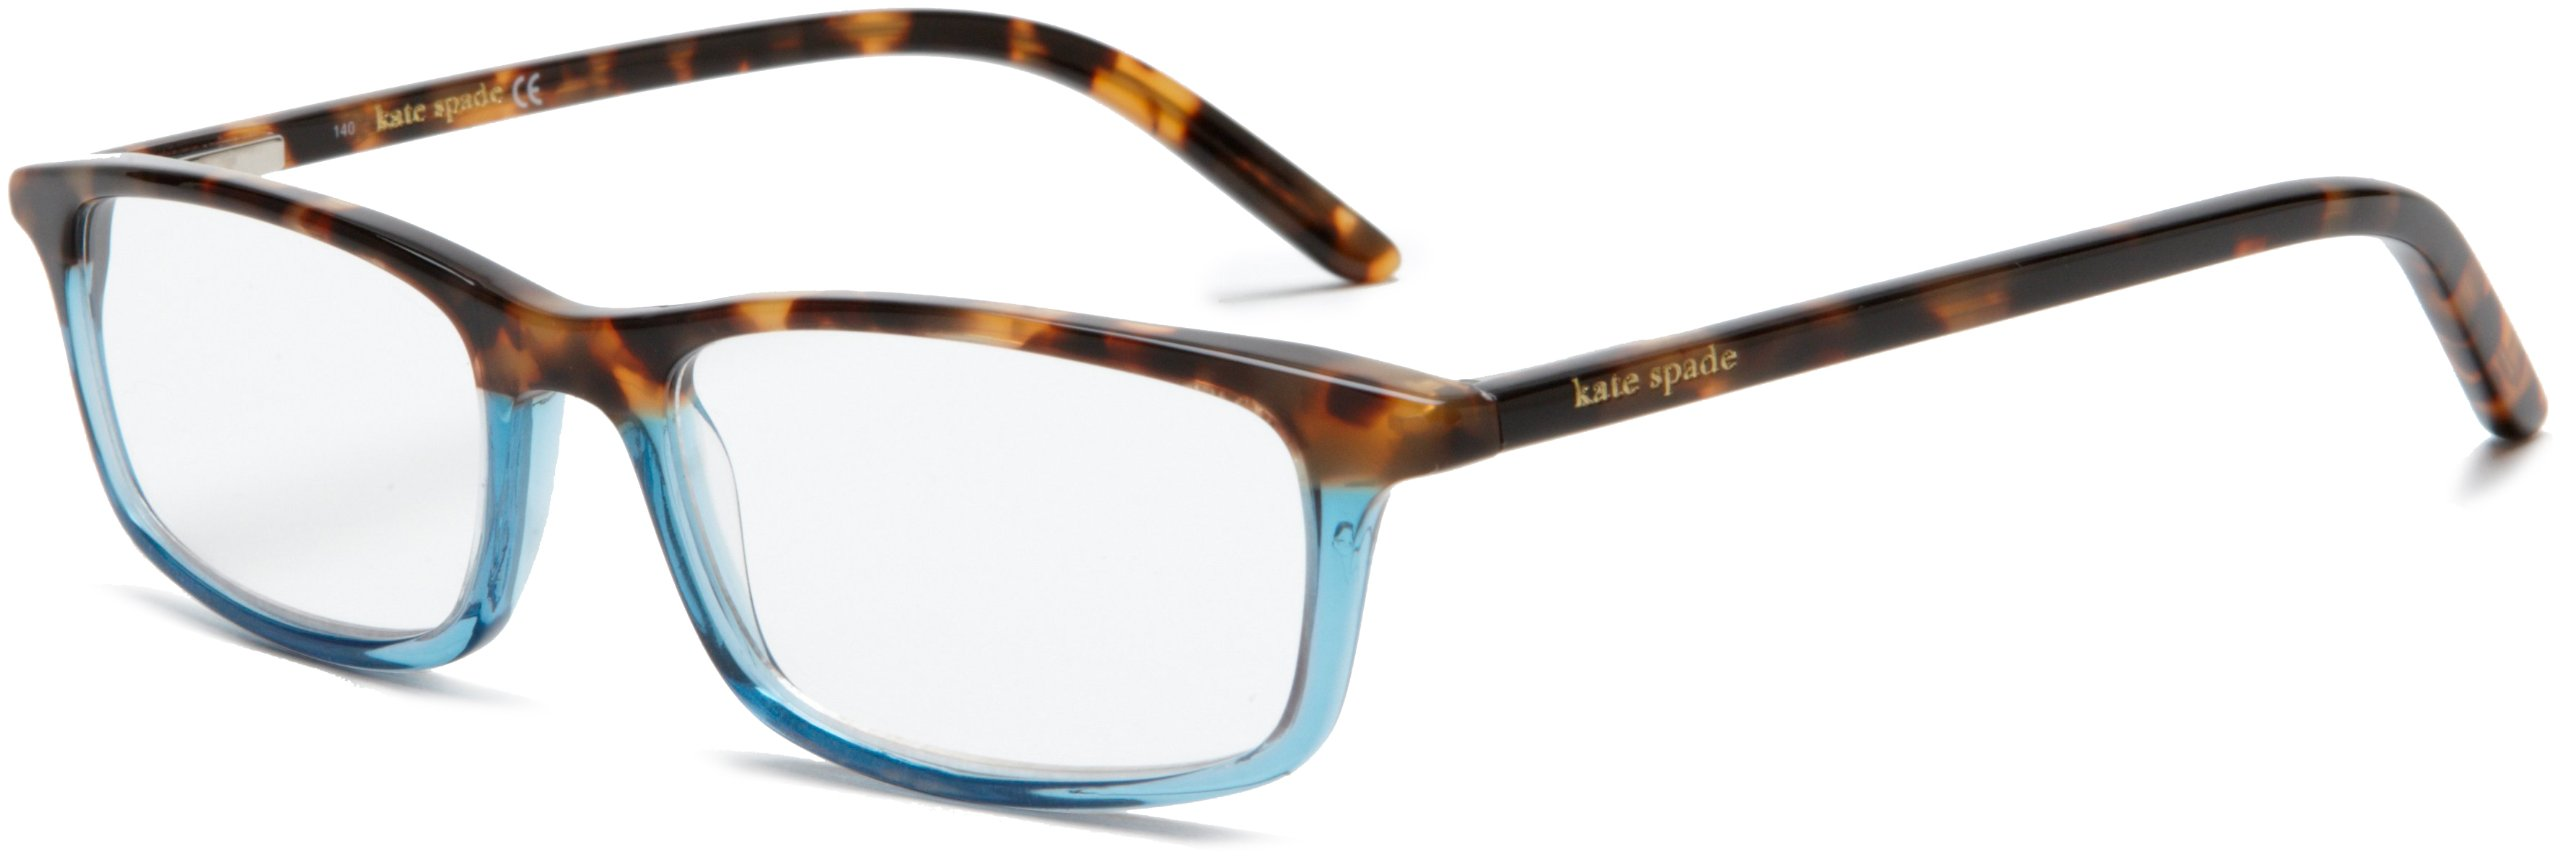 Kate Spade Women's Jodie HT10 Rectangle Reading Glasses,Havana Teal Frame/Demo Lens,1.00